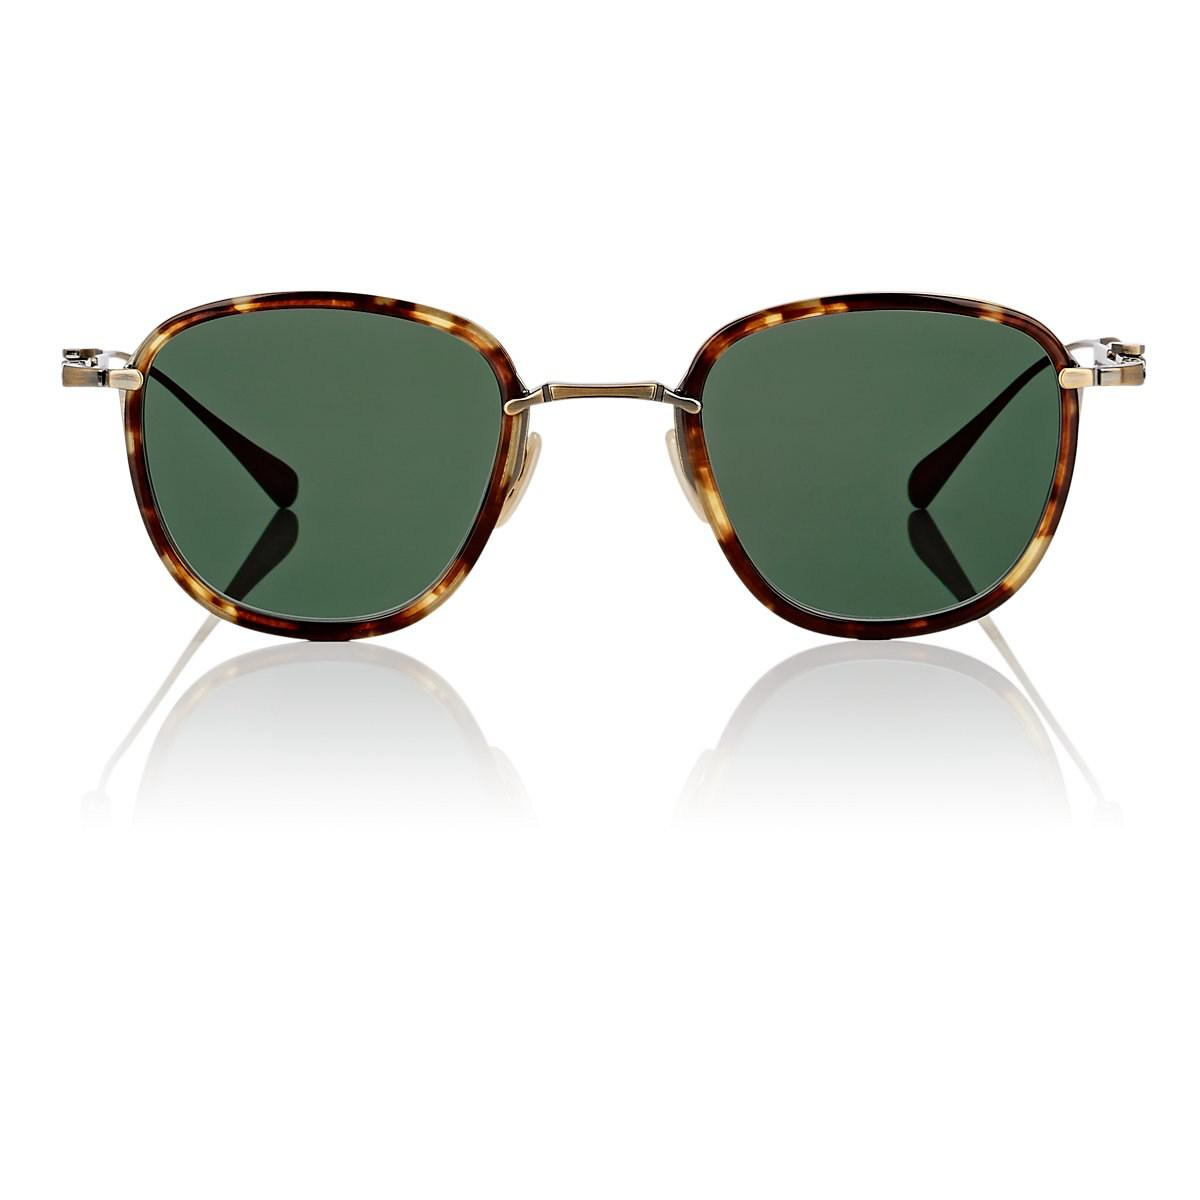 42860813f8578 Mr. Leight Griffith Cl Sunglasses in Green for Men - Lyst